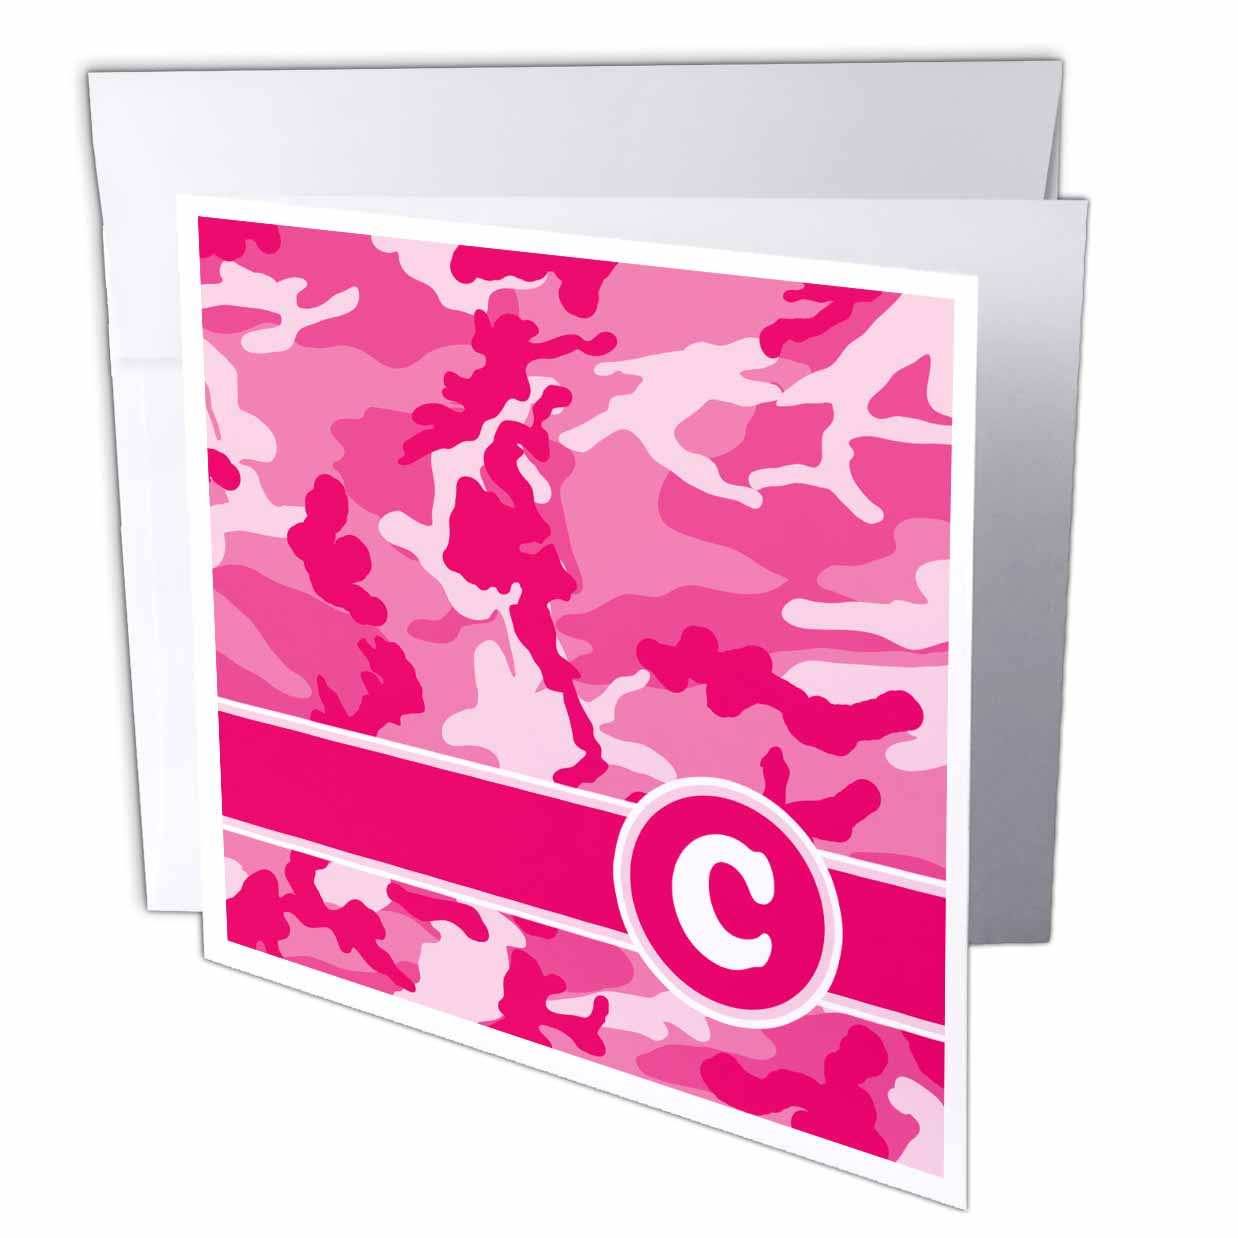 3dRose Cute Pink Camo Camouflage Letter C, Greeting Cards, 6 x 6 inches, set of 12